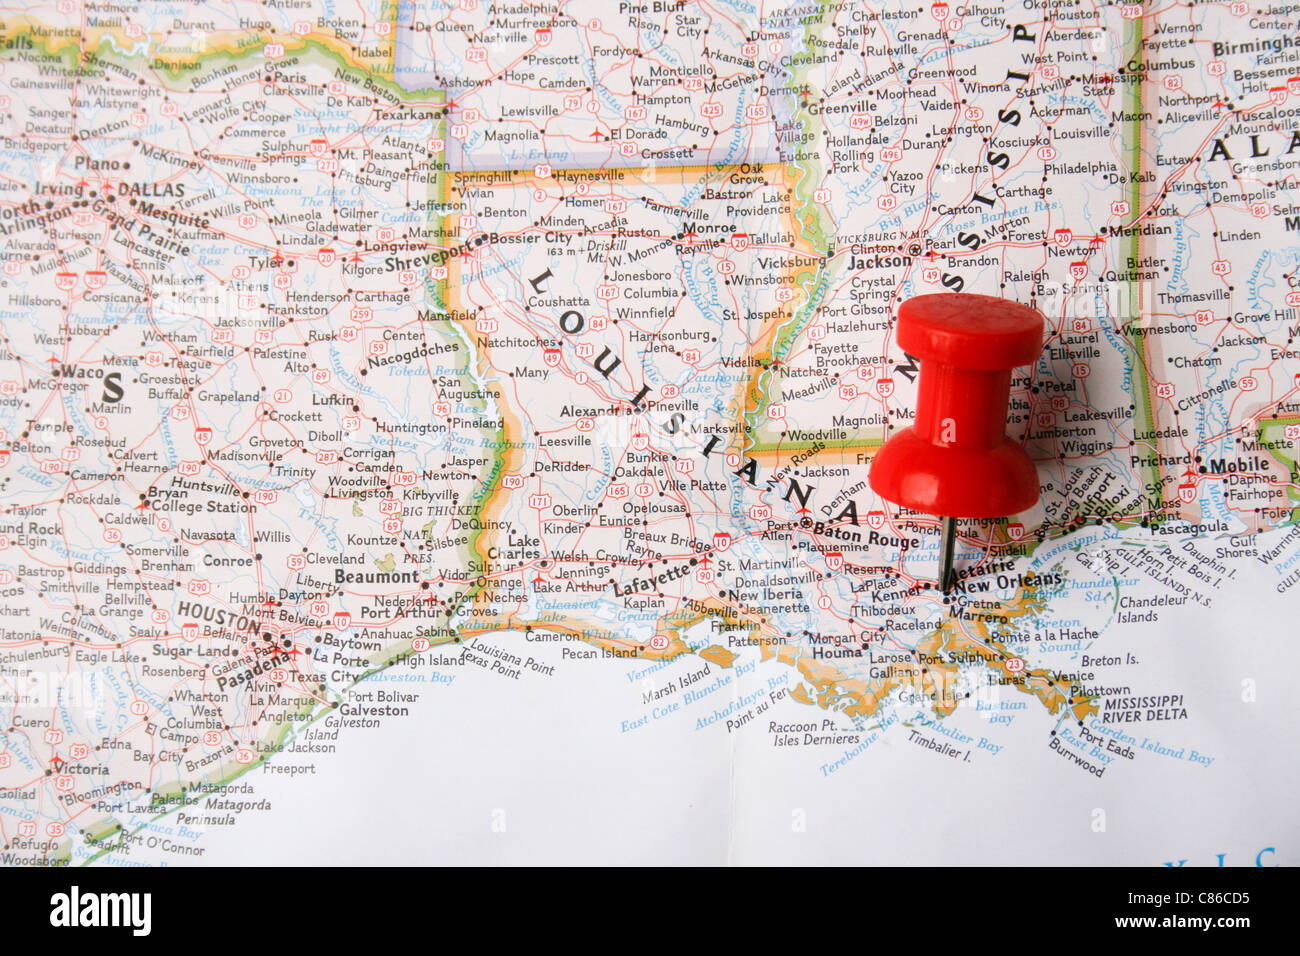 Red Pin On Map Of USA Pointing At New Orleans Louisiana Stock - New orleans usa map